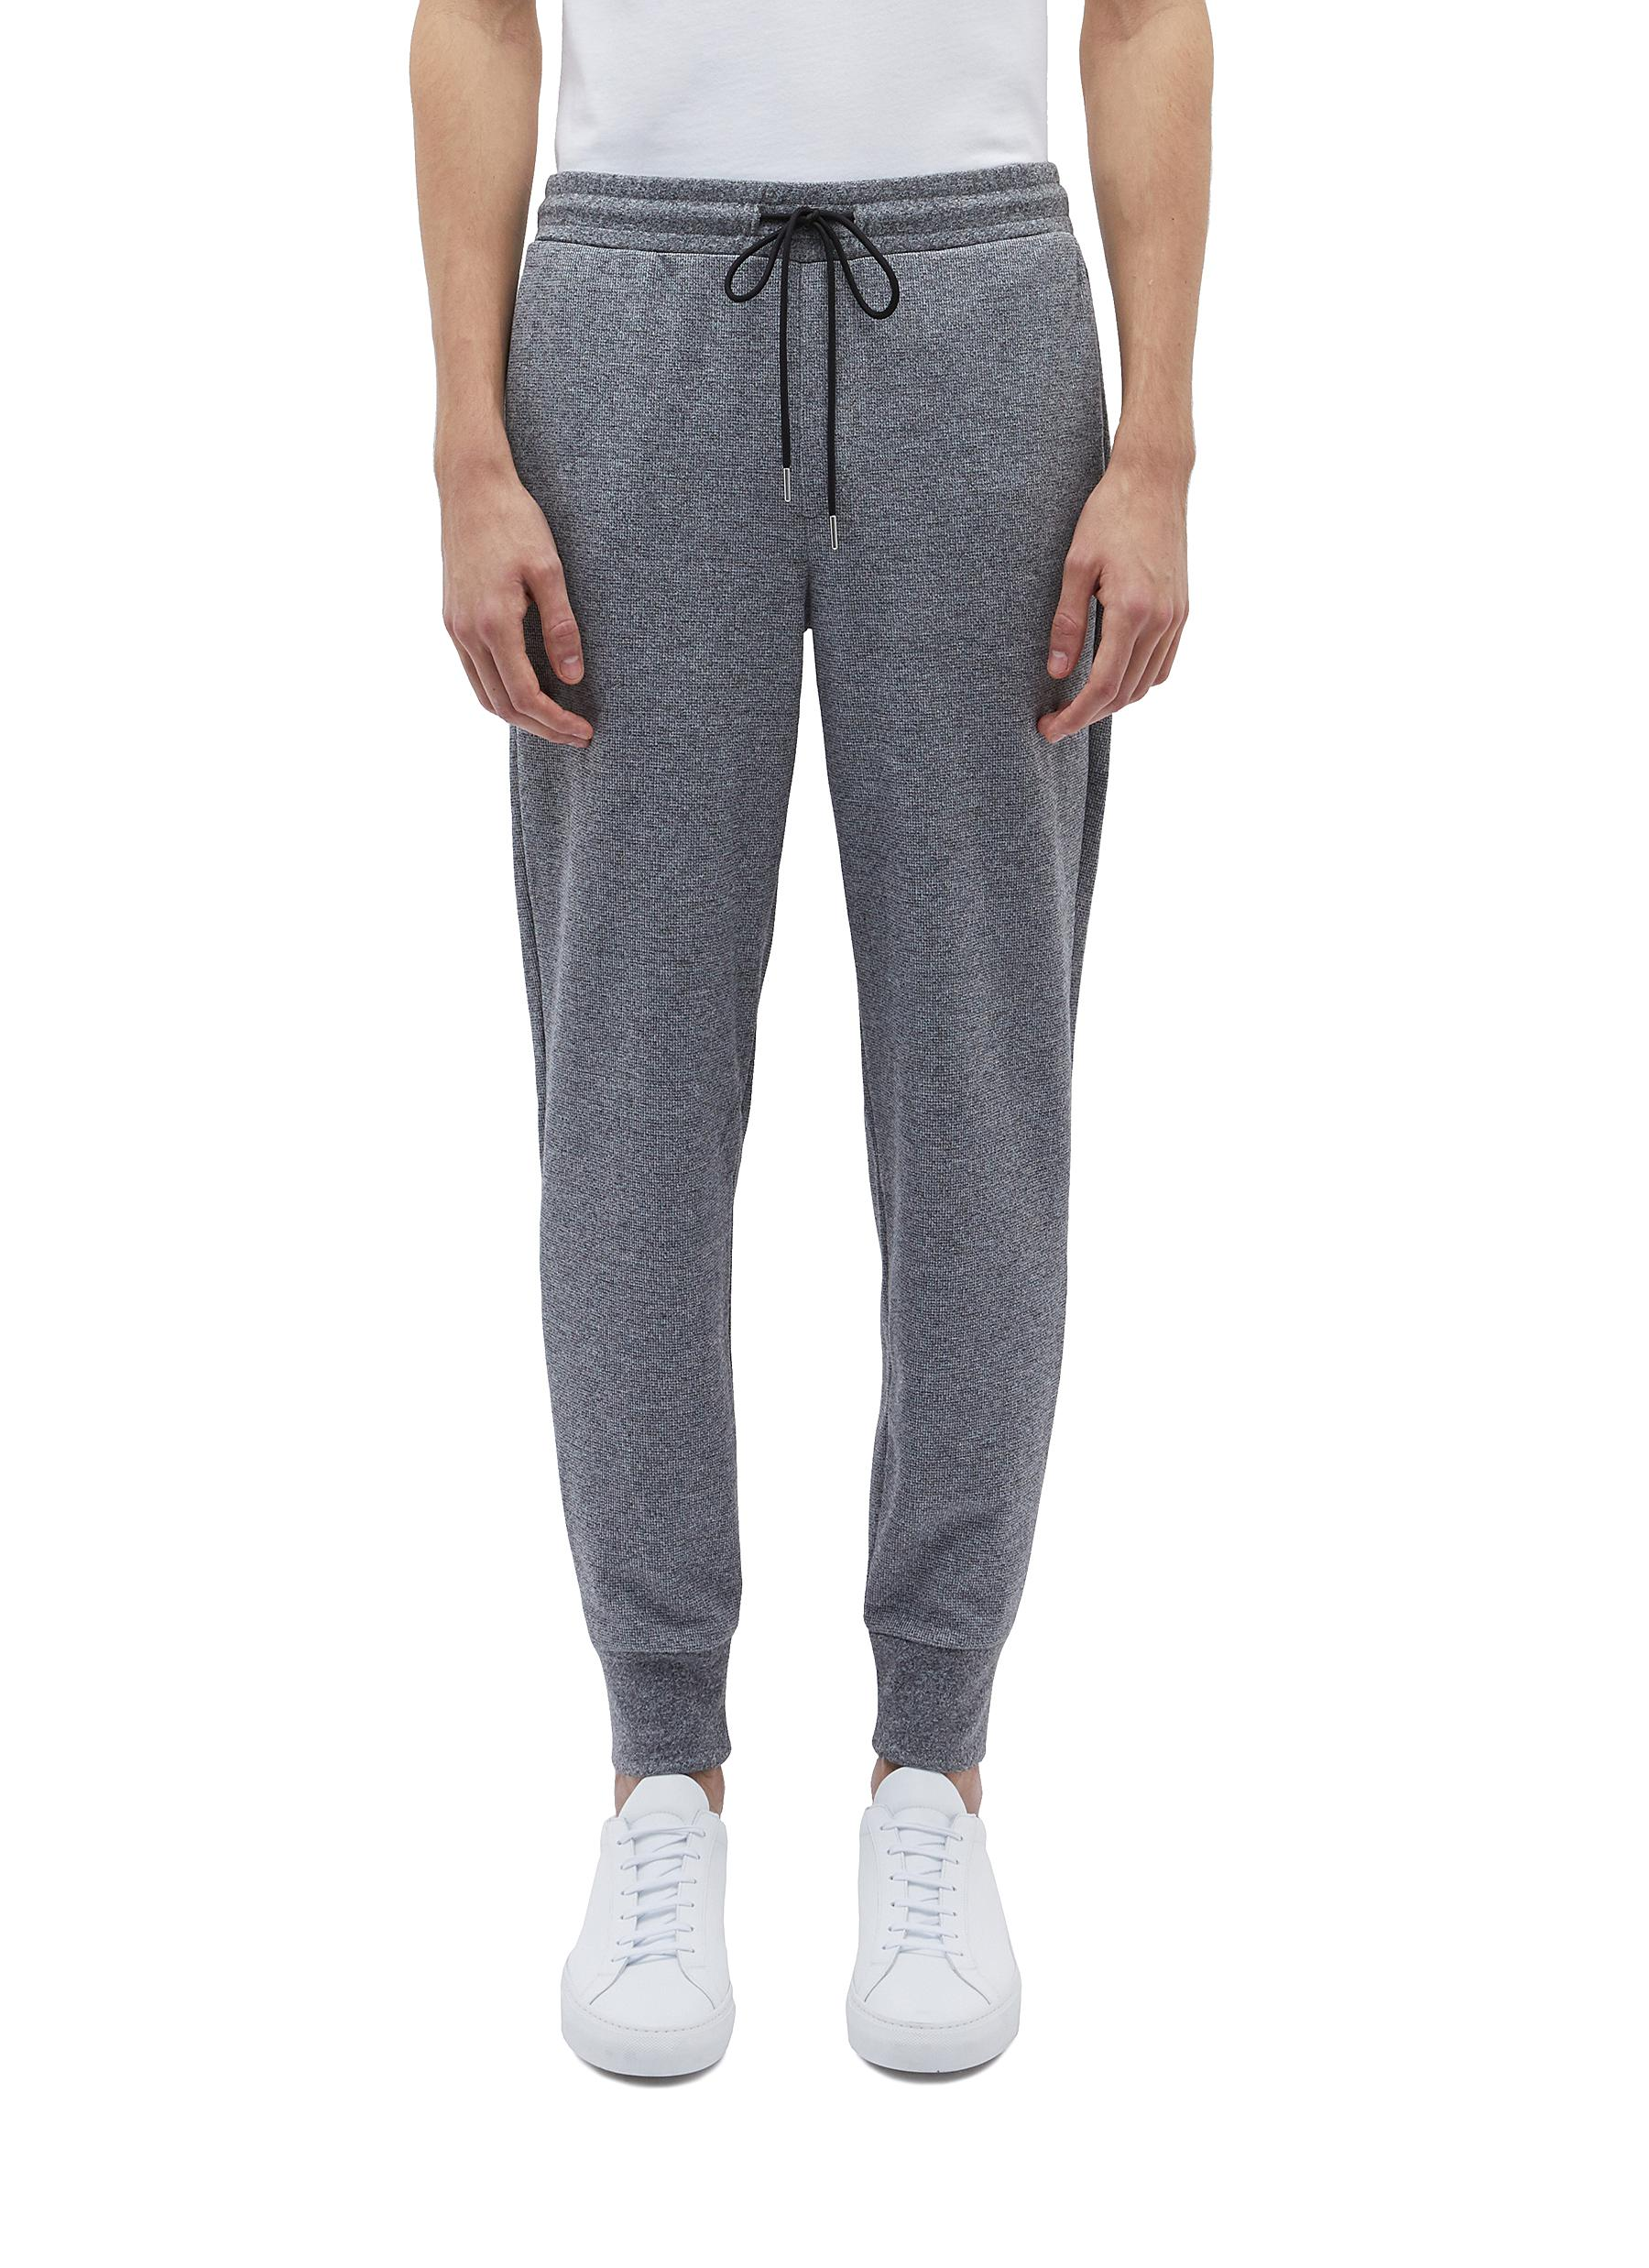 8198490aa617 Main View - Click To Enlarge - Theory -  Essential  waffle knit sweatpants